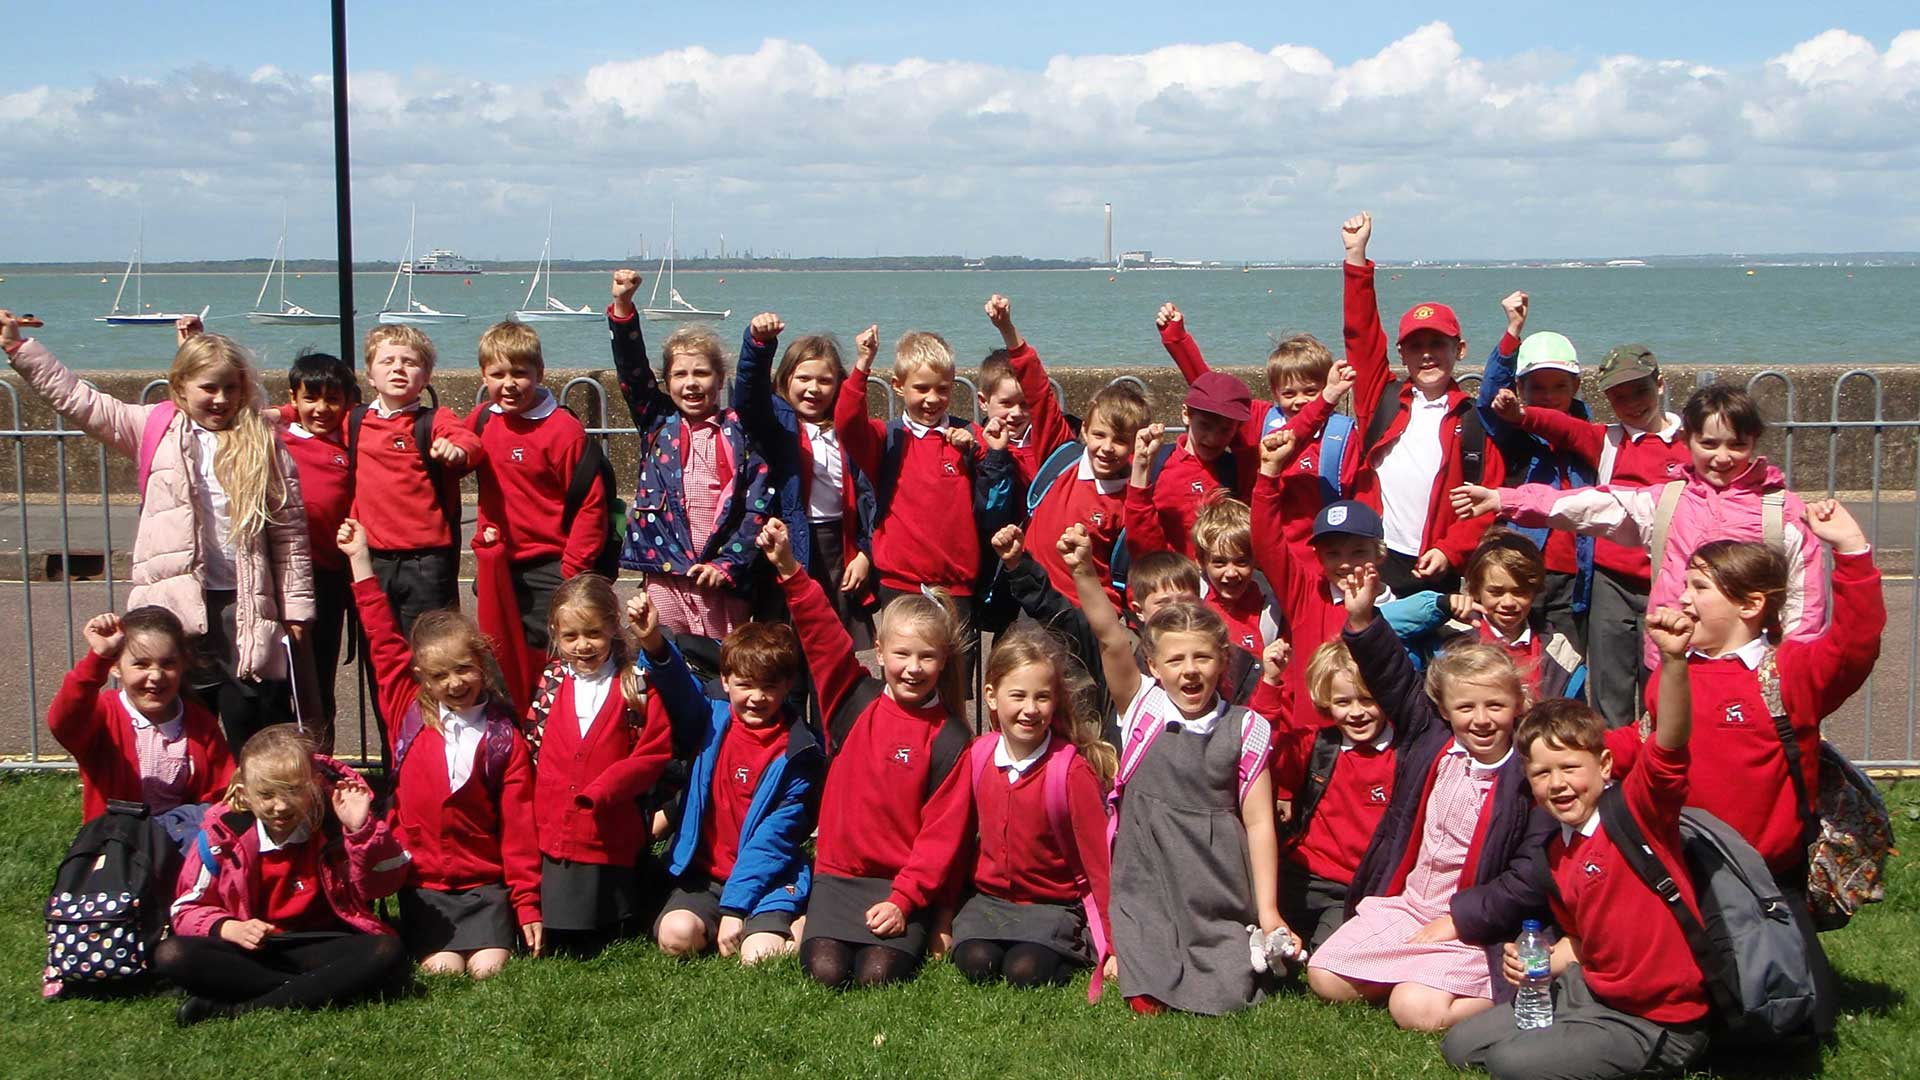 Children cheering on an Isle of Wight school trip